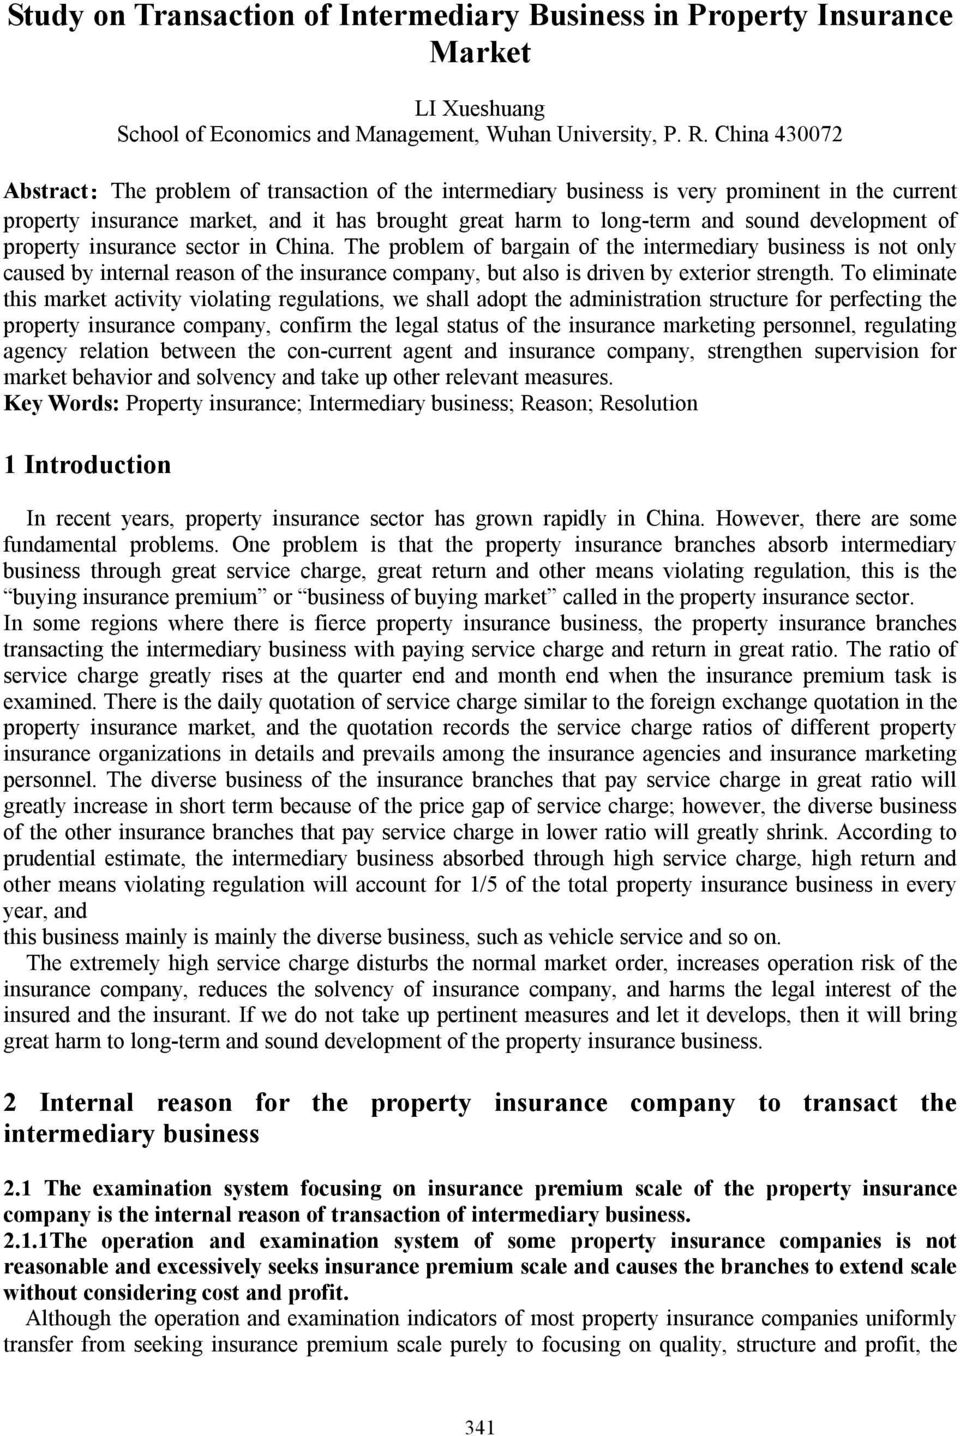 development of property insurance sector in China.